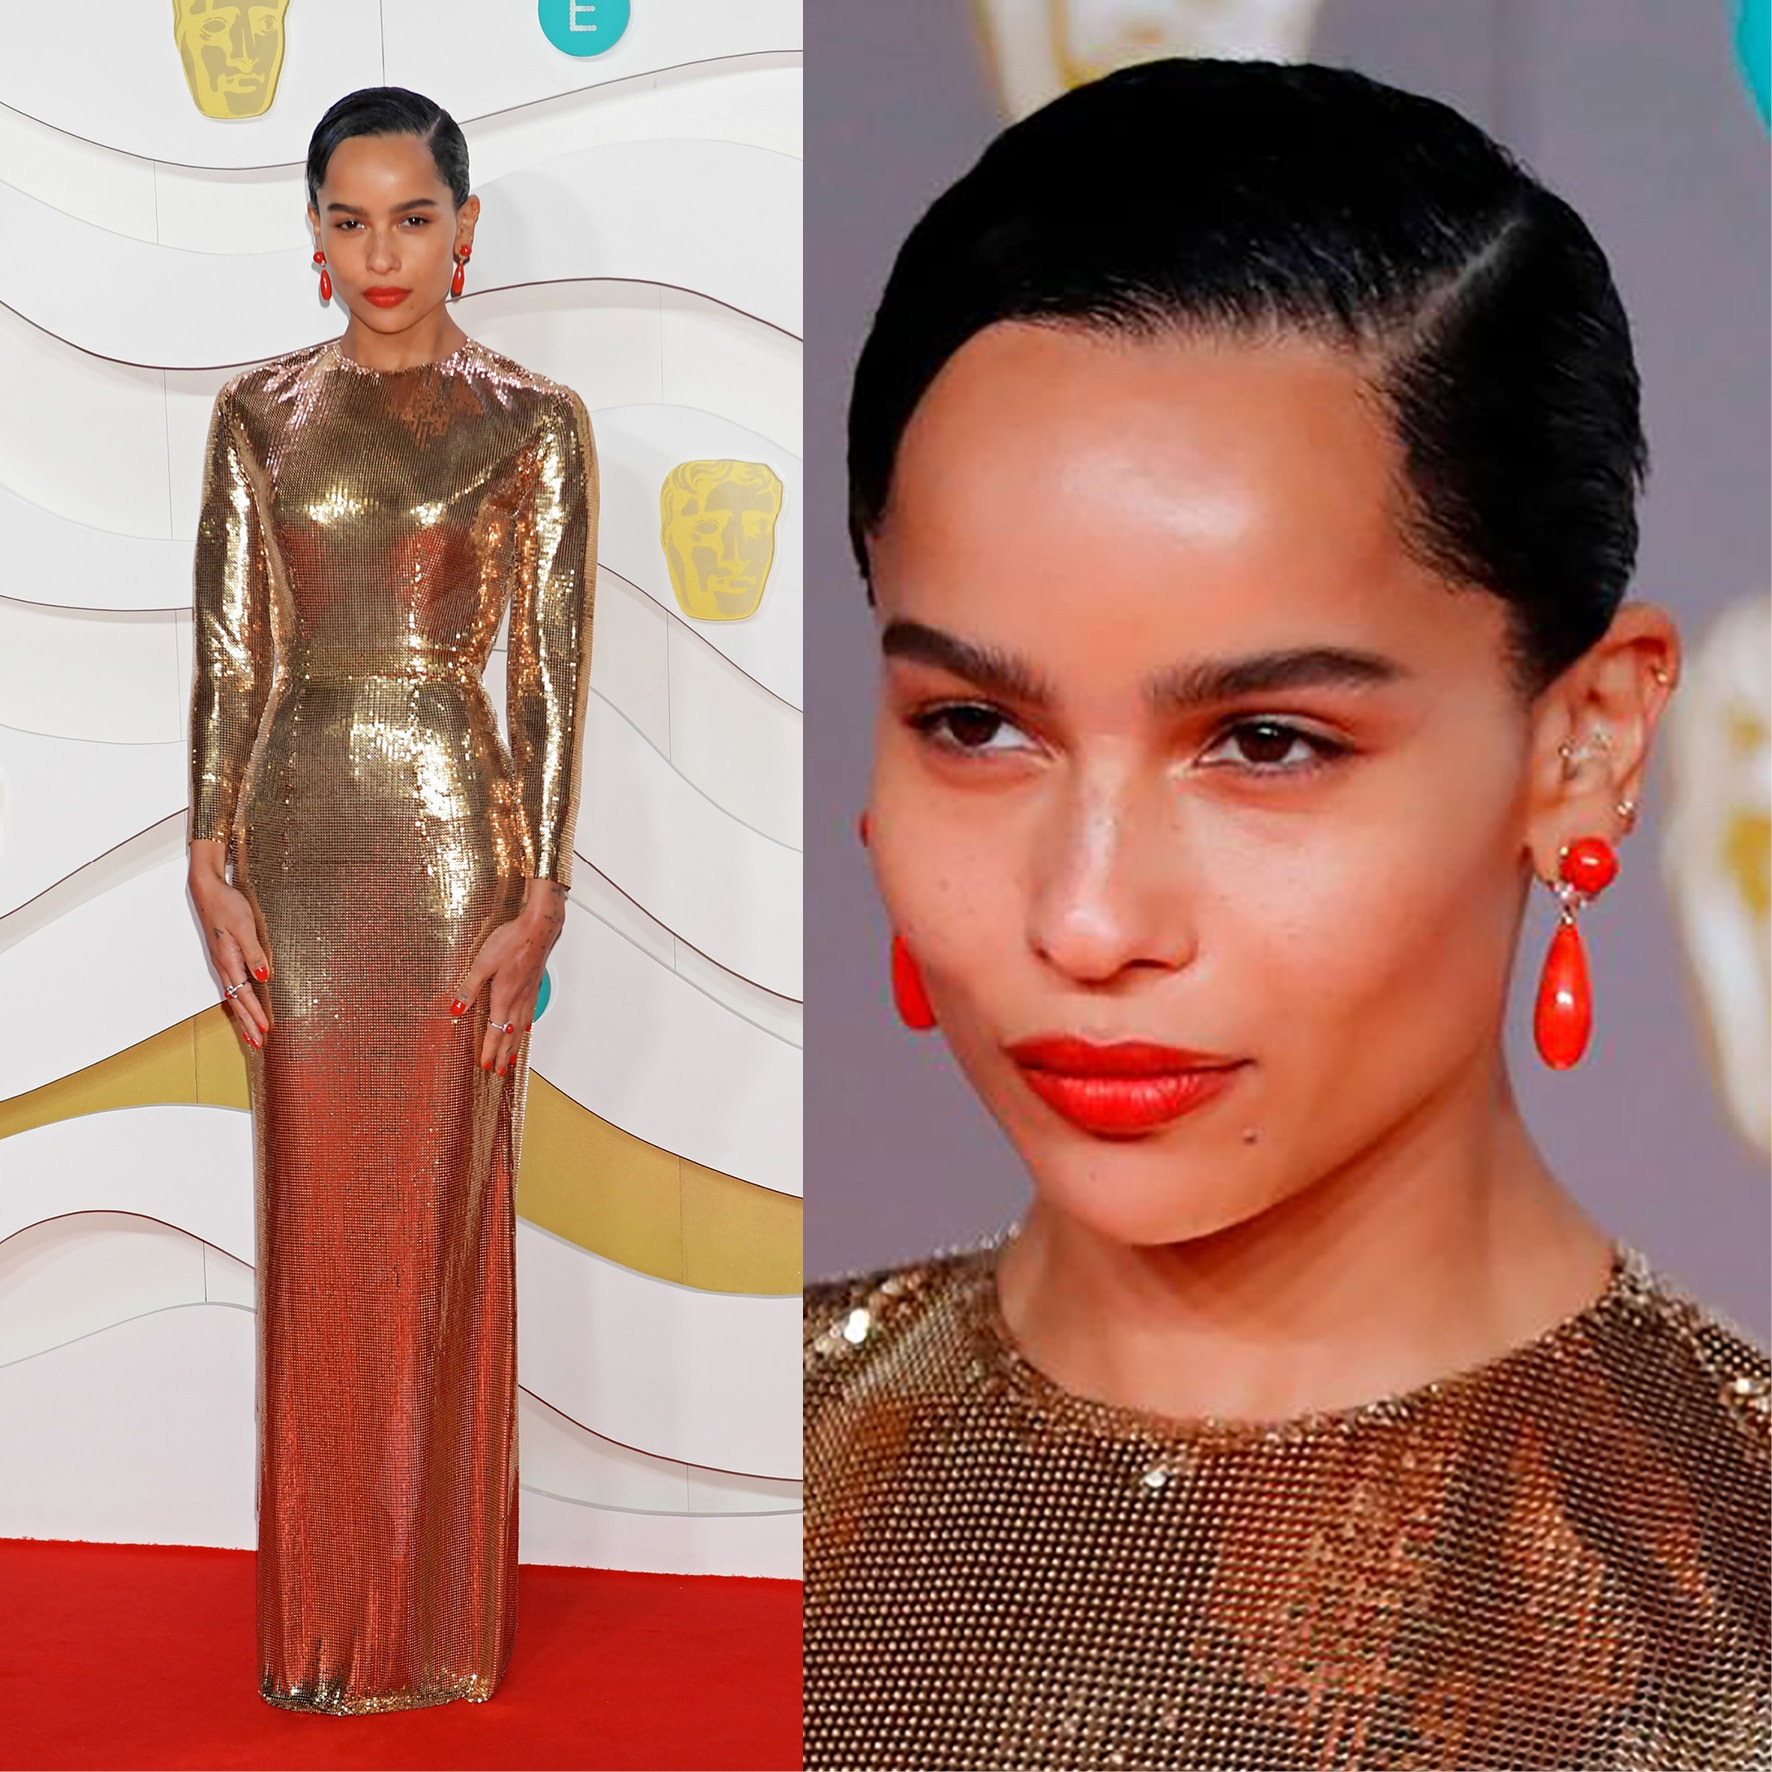 ZOE KRAVITZ at BAFTA 2020